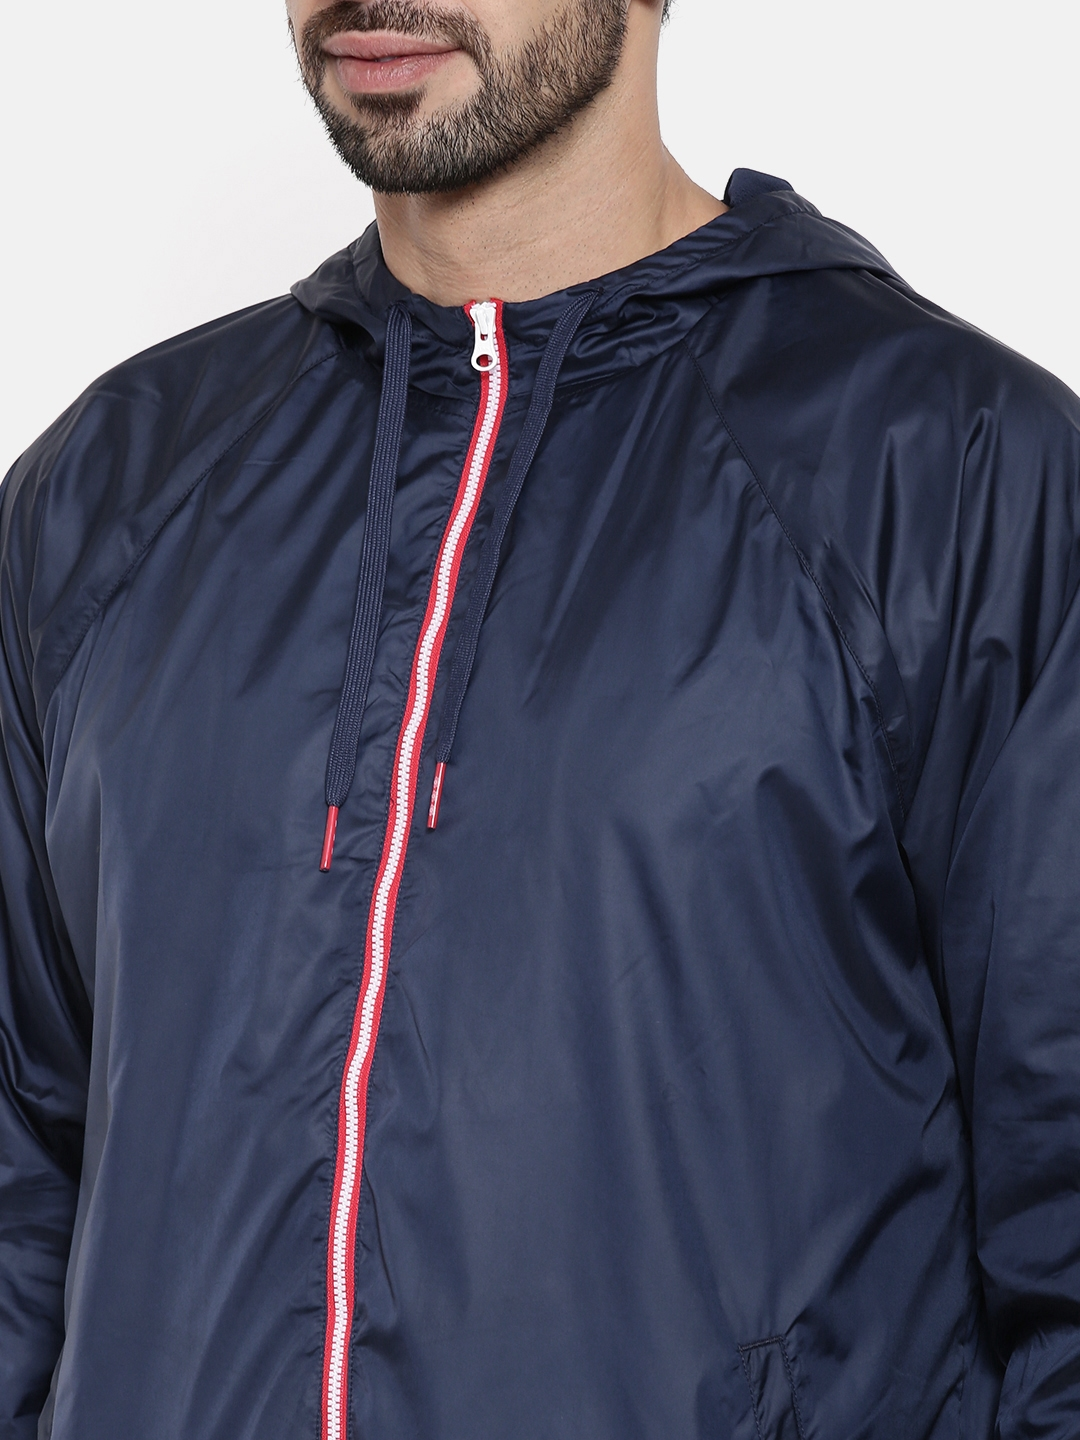 8d5f9f6ed426 Buy Reebok Classic Men Blue Solid AC F WINDBREAKER Sporty Jacket ...